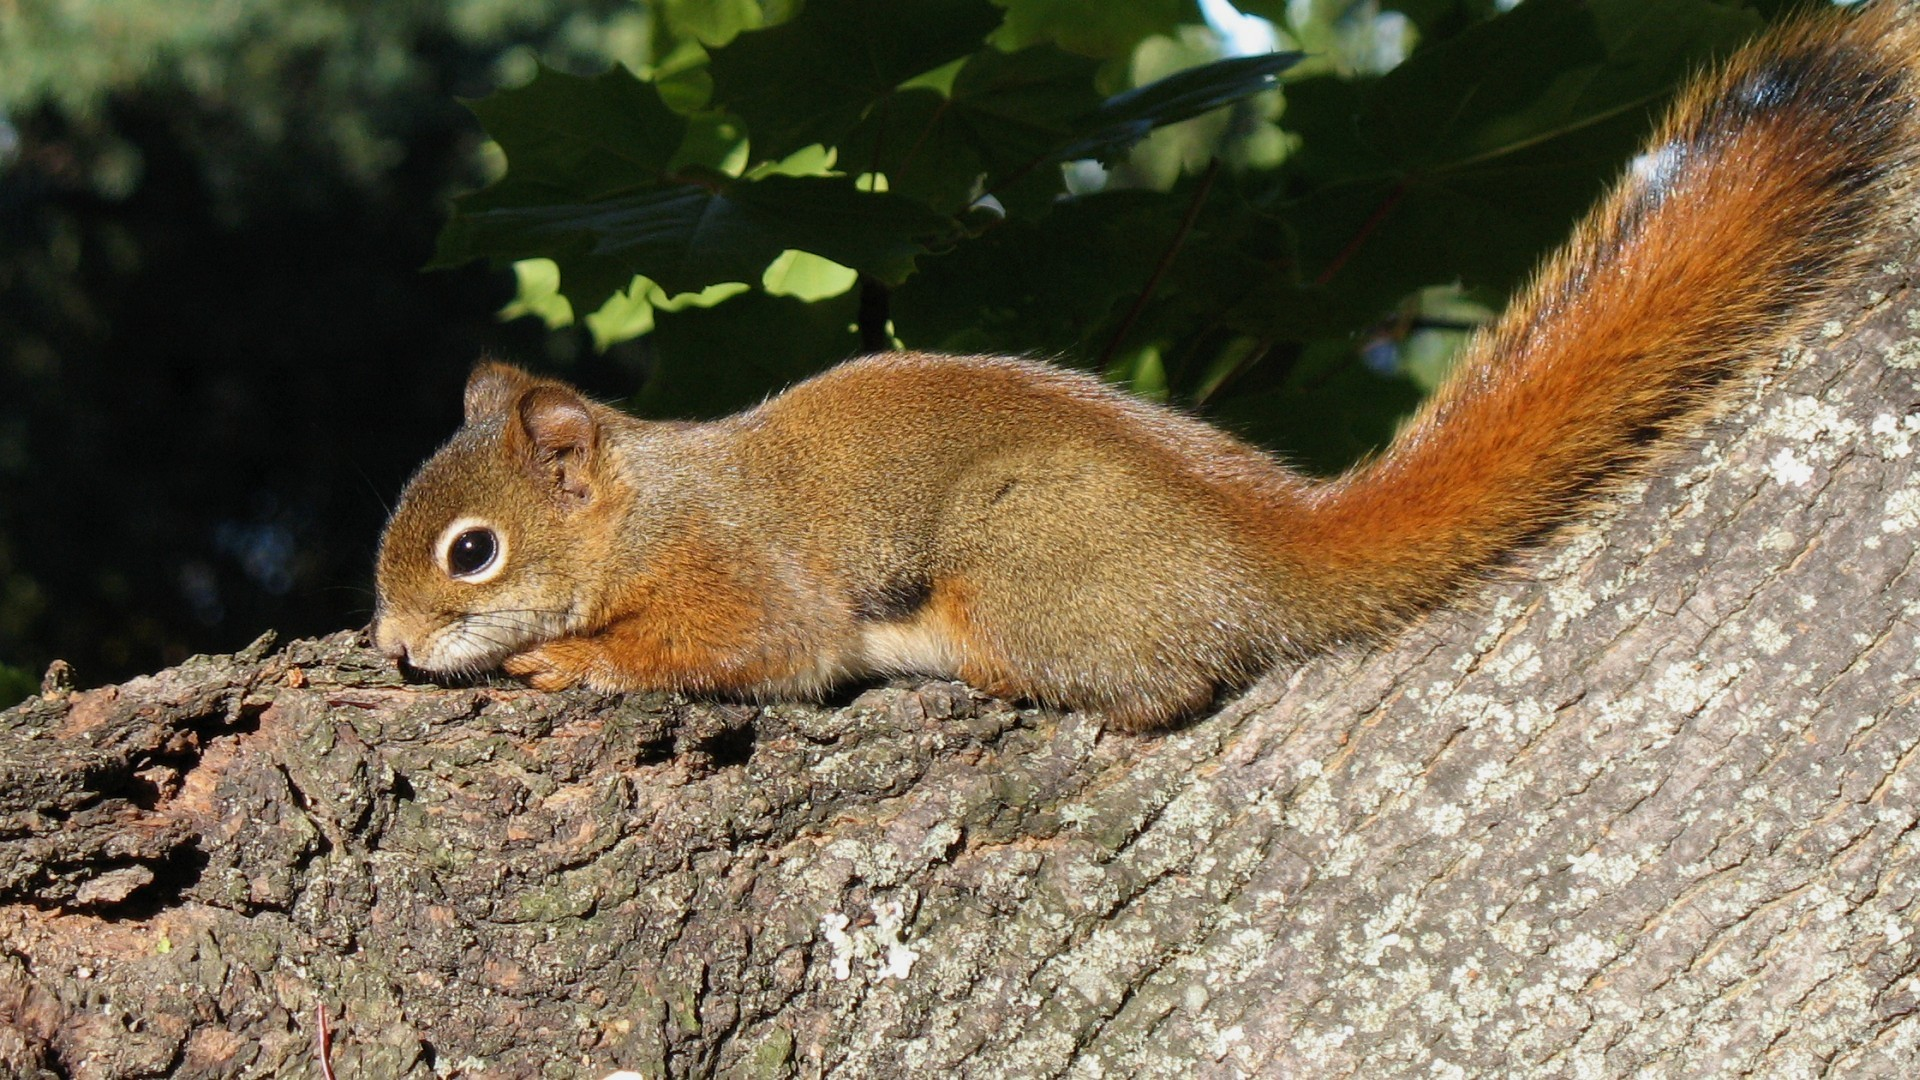 Some species, such as the Canadian red squirrel, have shown an evolutionary response to the effects of climate change. Photo: Gilles Gonthier (Wiki Commons)